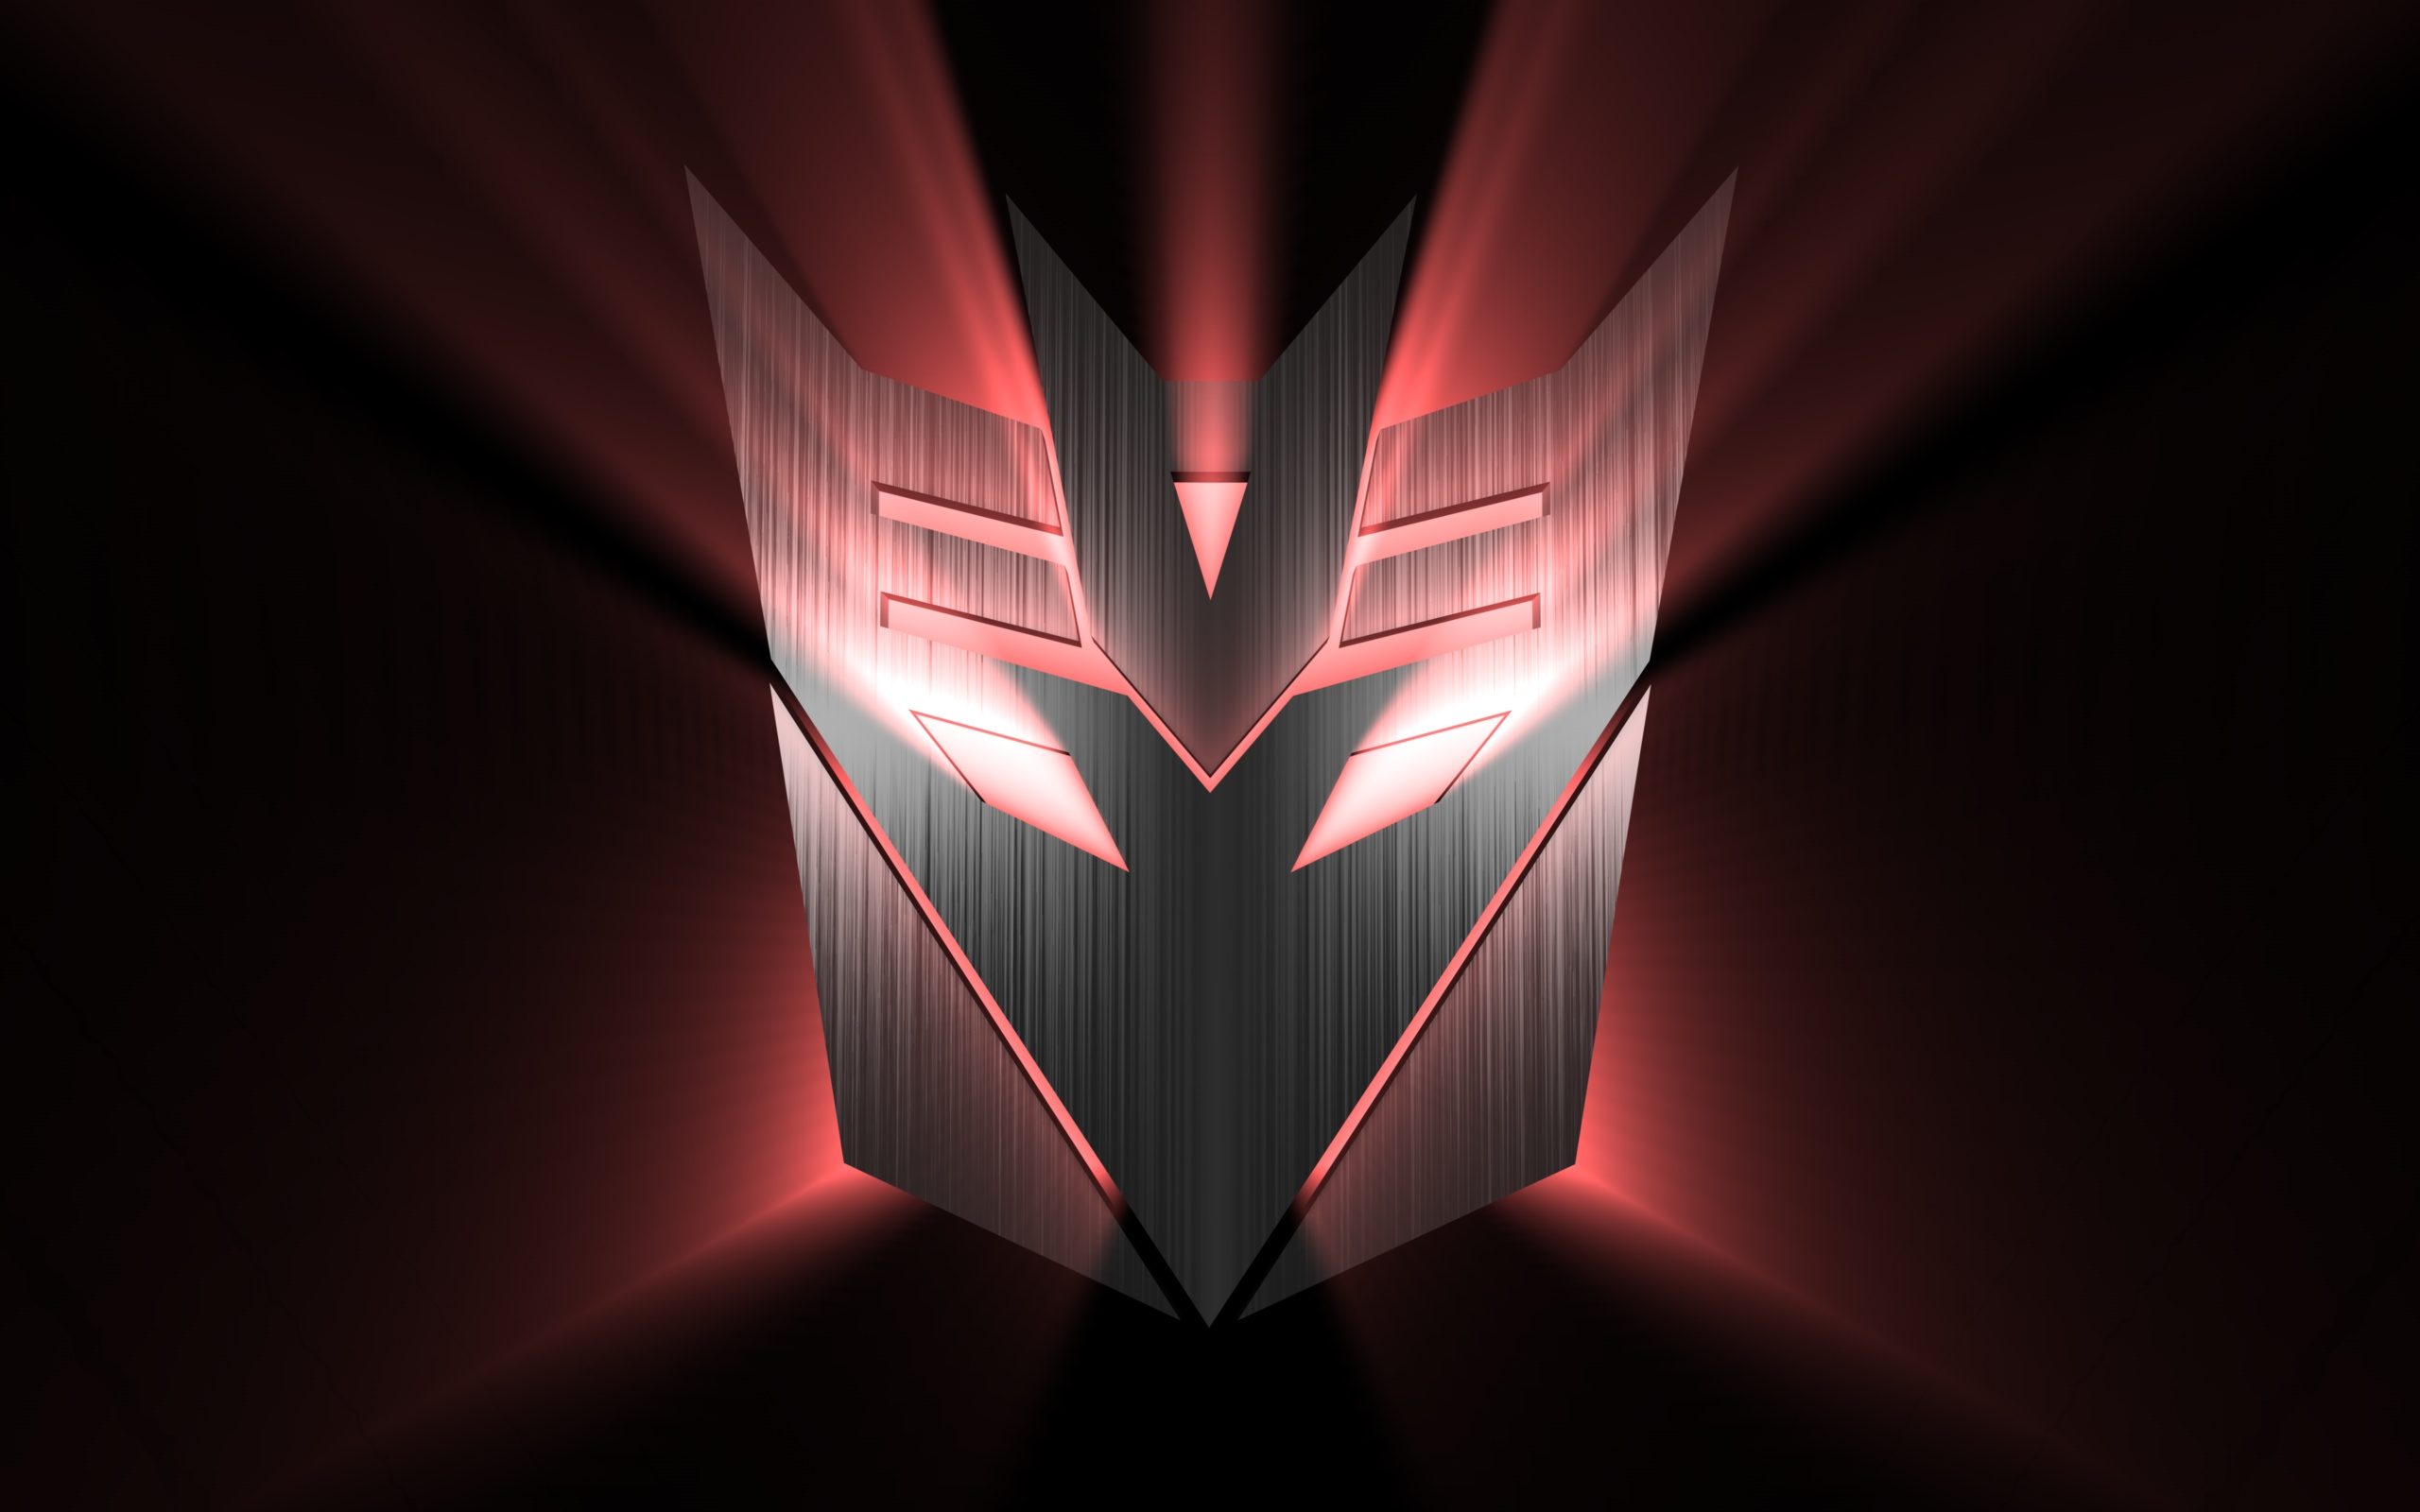 Decepticon logo wallpaper | Wallpaper Wide HD